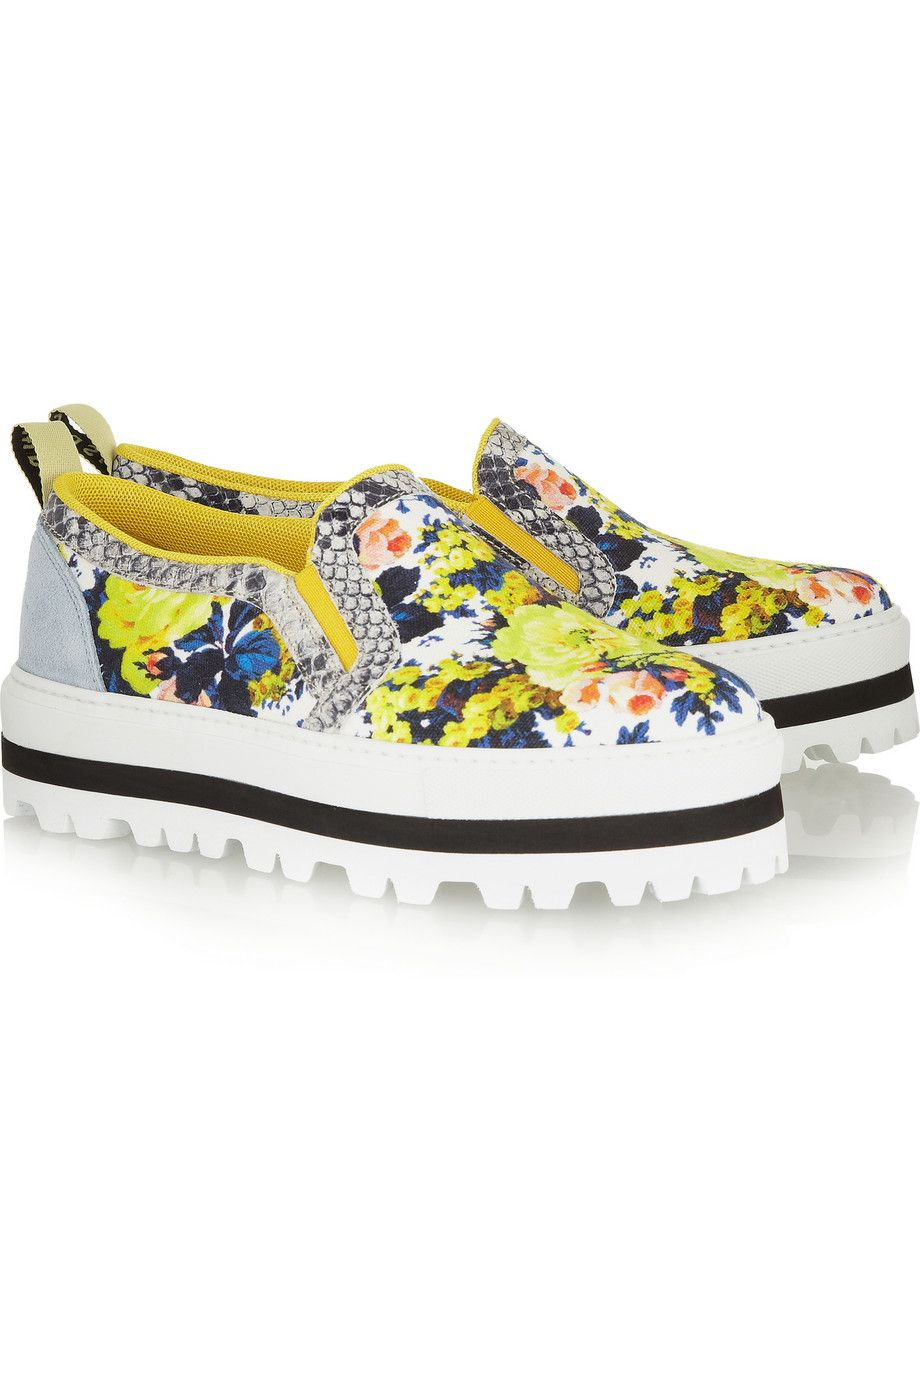 426a71450548 MSGM Floral-Print Canvas Sneakers